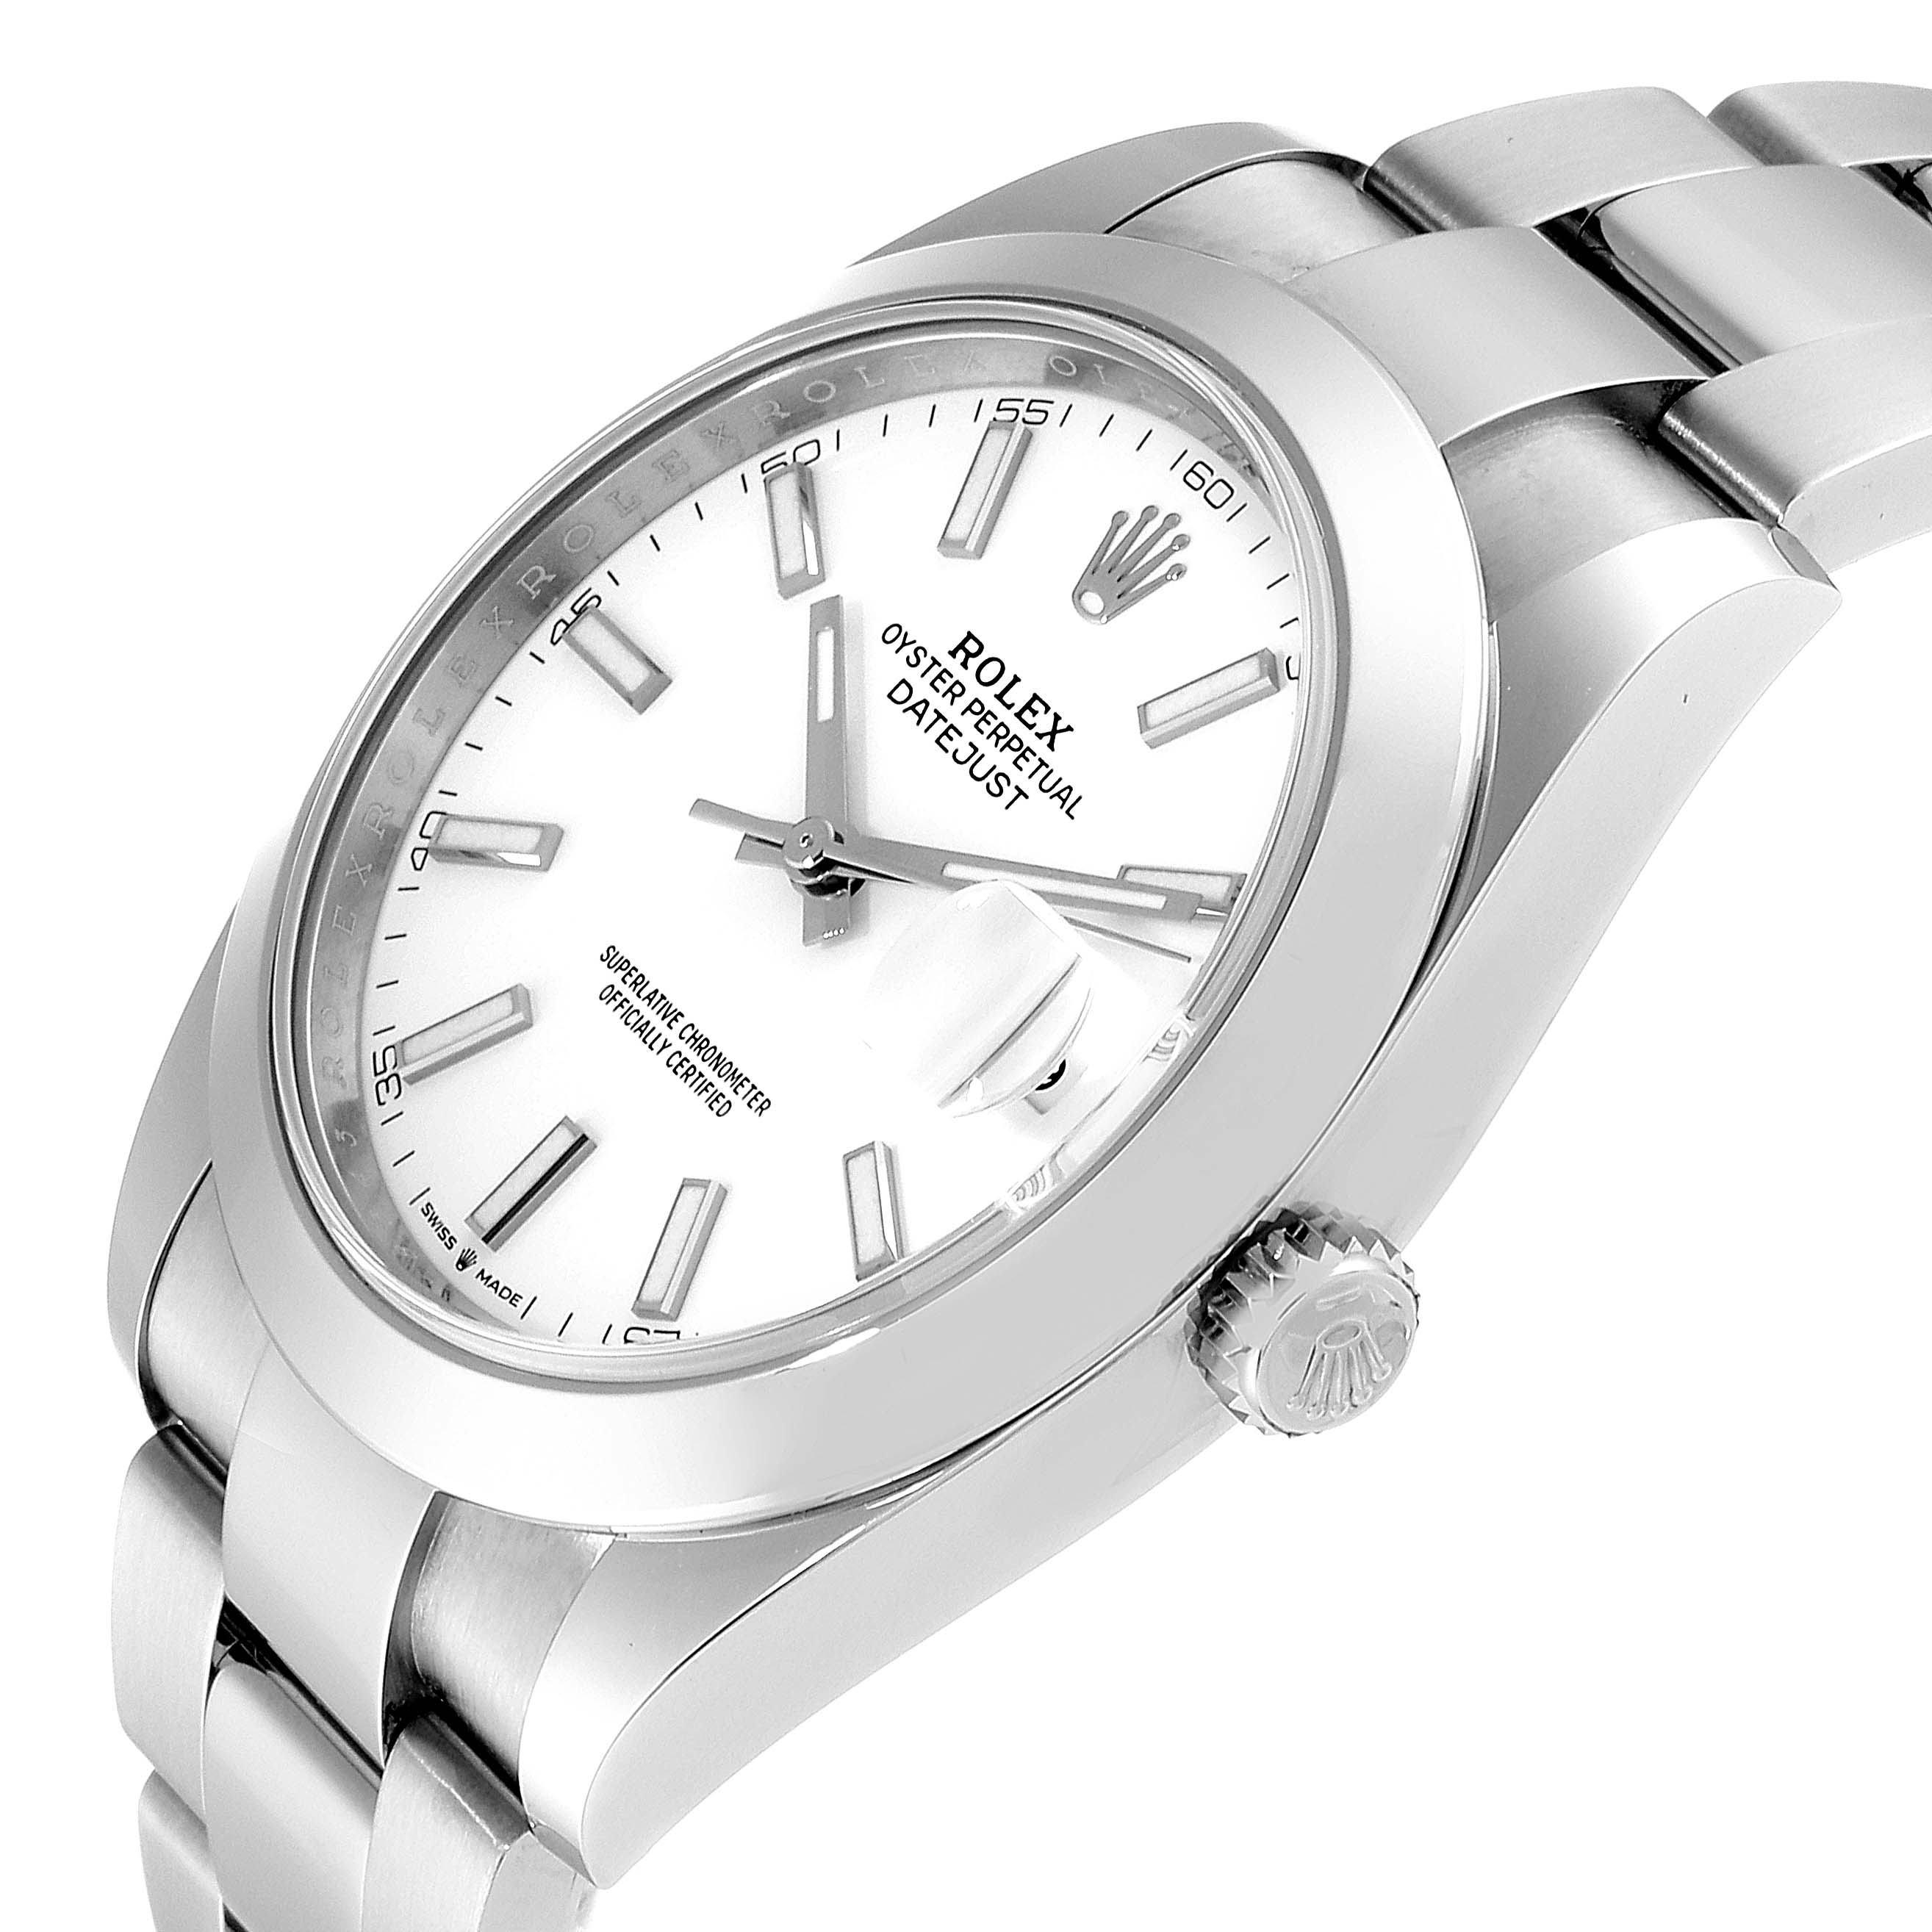 Rolex Datejust 41 White Dial Steel Mens Watch 126300 Box Card SwissWatchExpo